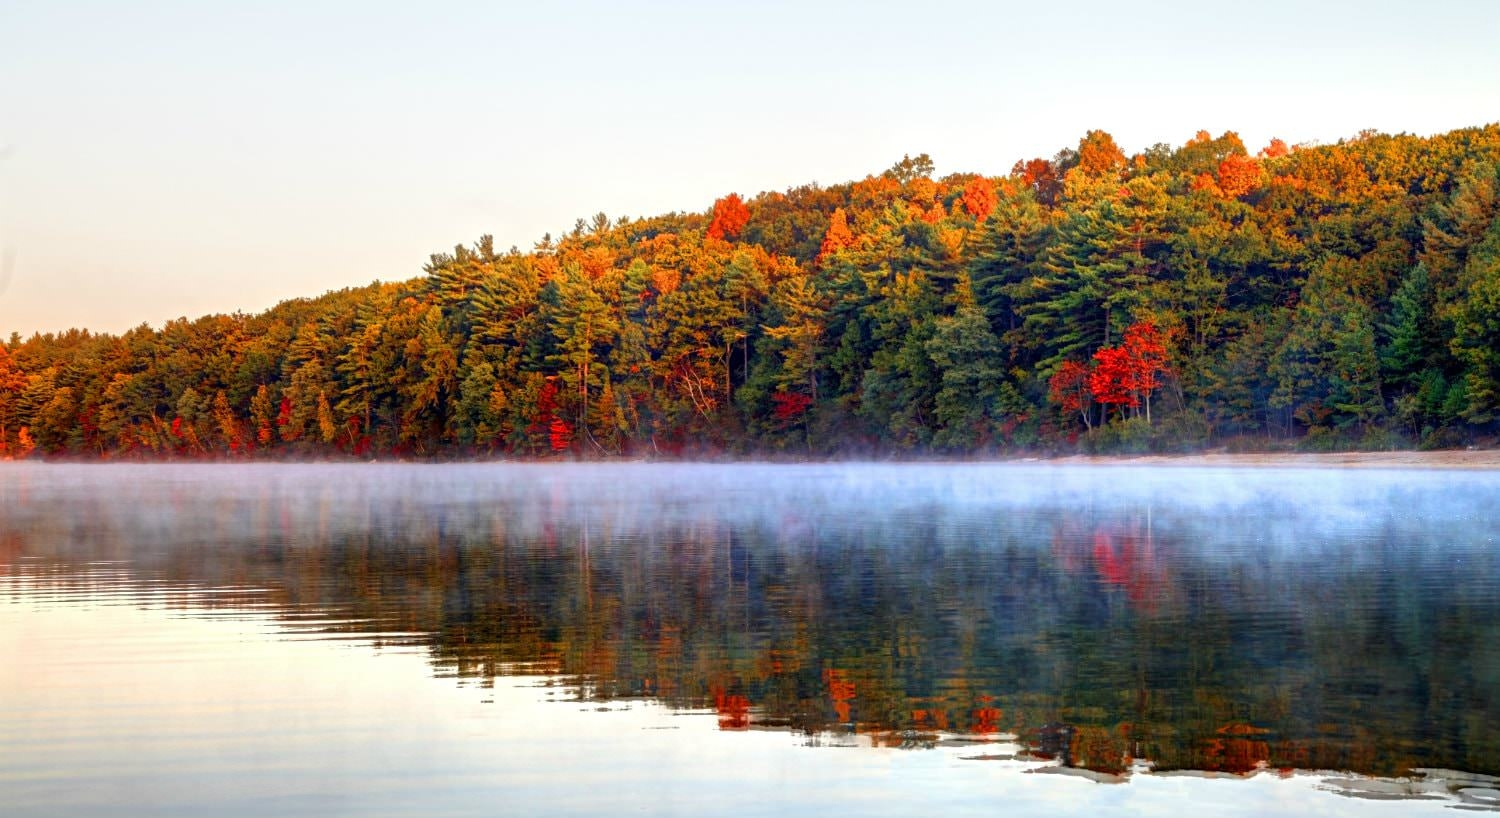 Vibrant trees with green, yelow, orange and red leaves reflected in a body of misty water